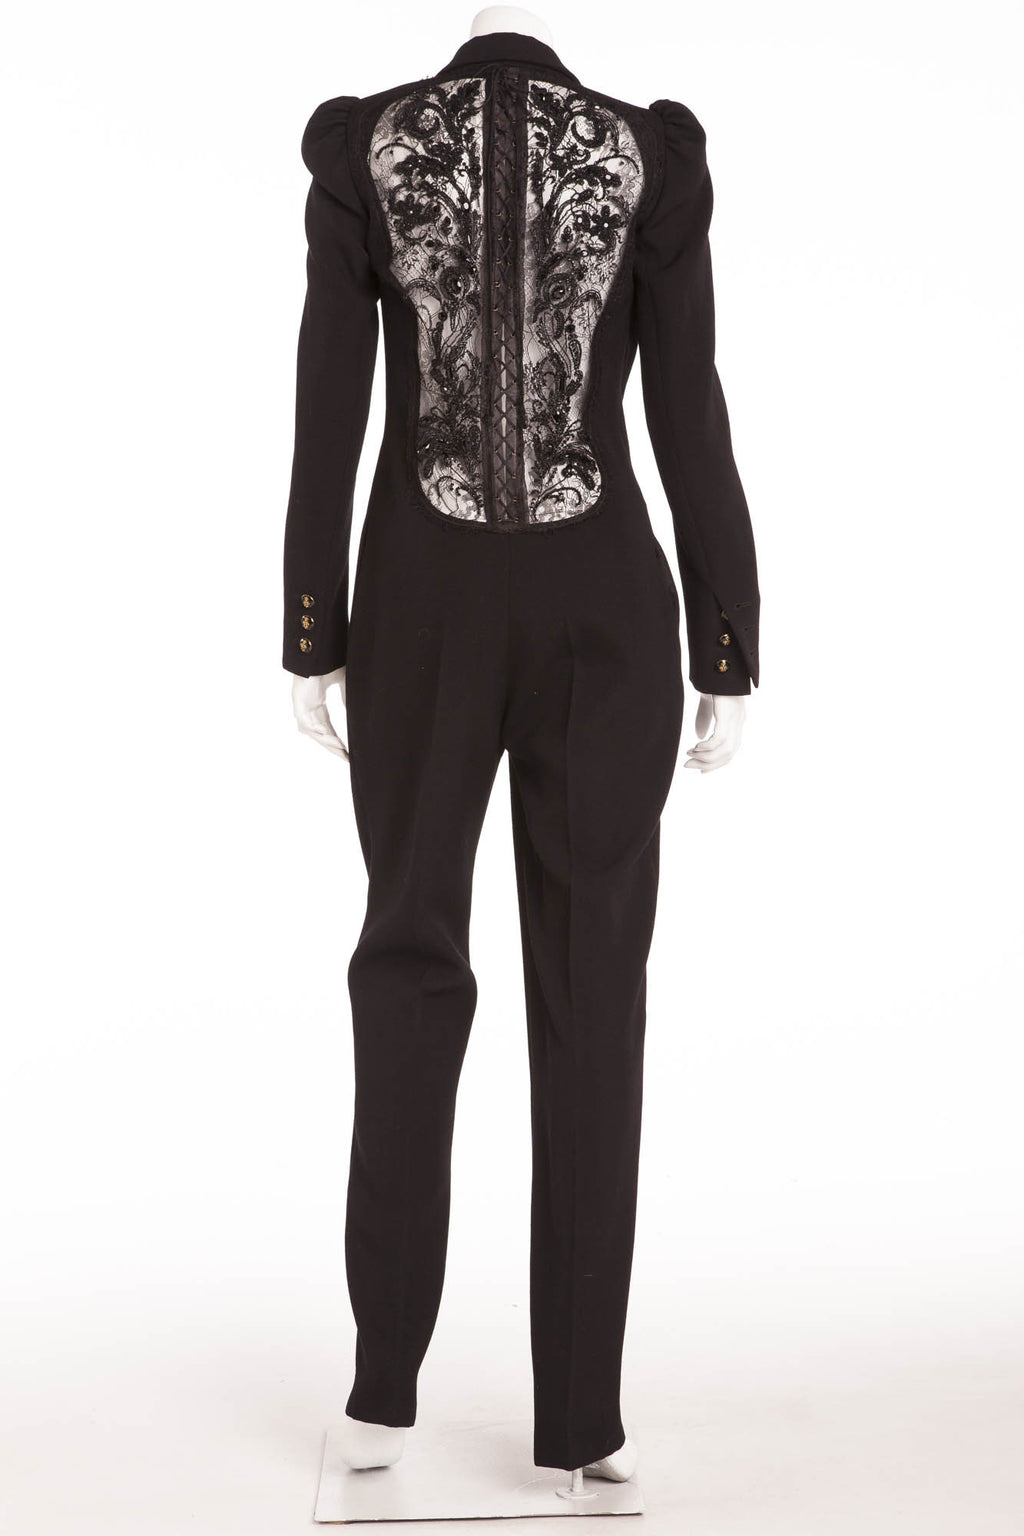 Emilio Pucci - Long Sleeve Black Jumpsuit Embellished Beaded Back - IT 42